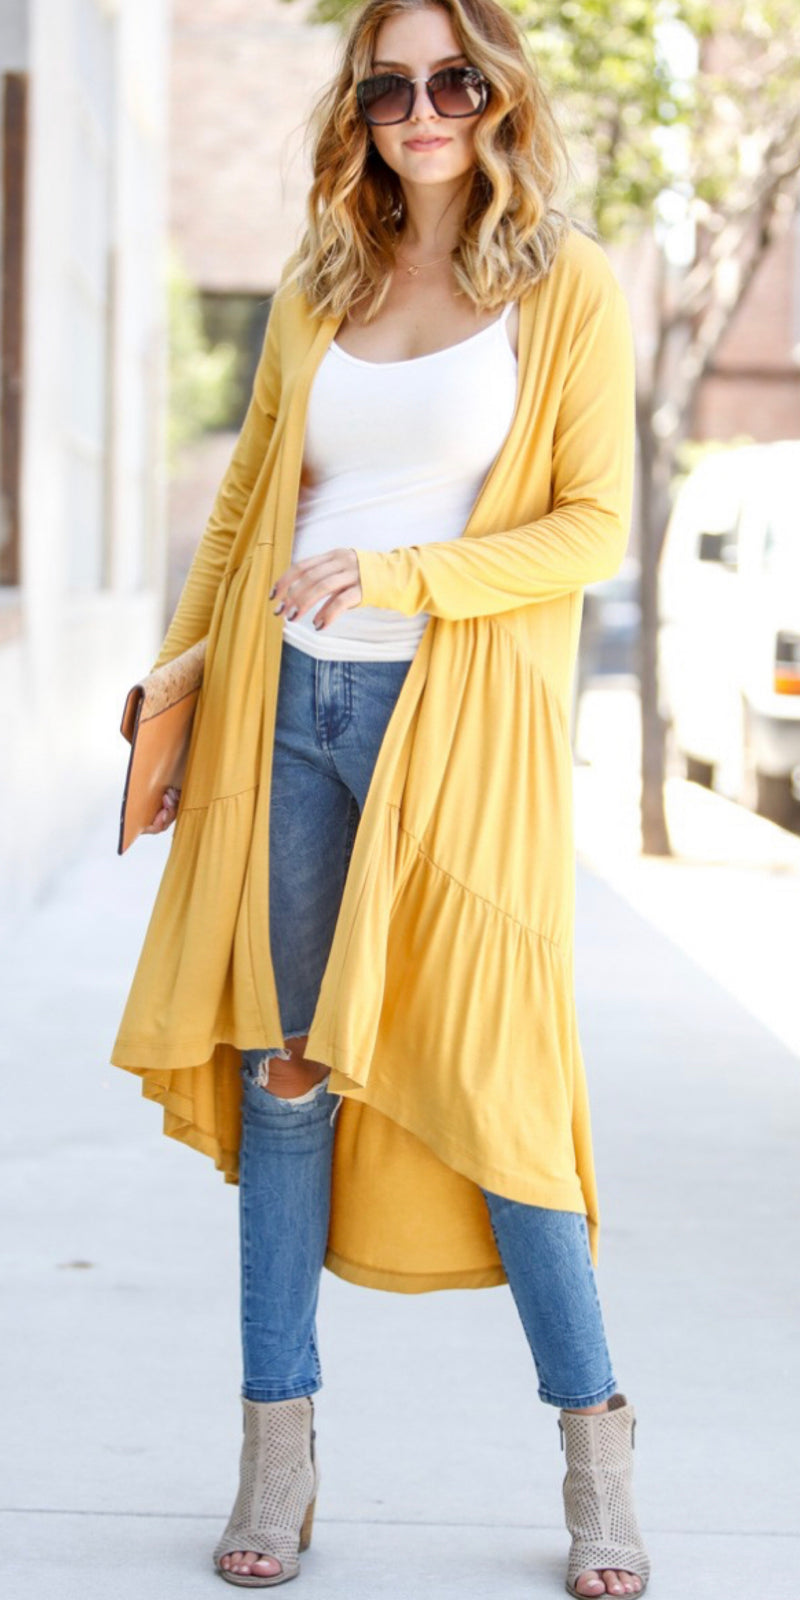 Casanova Mustard Cardigan - Also in Plus Size